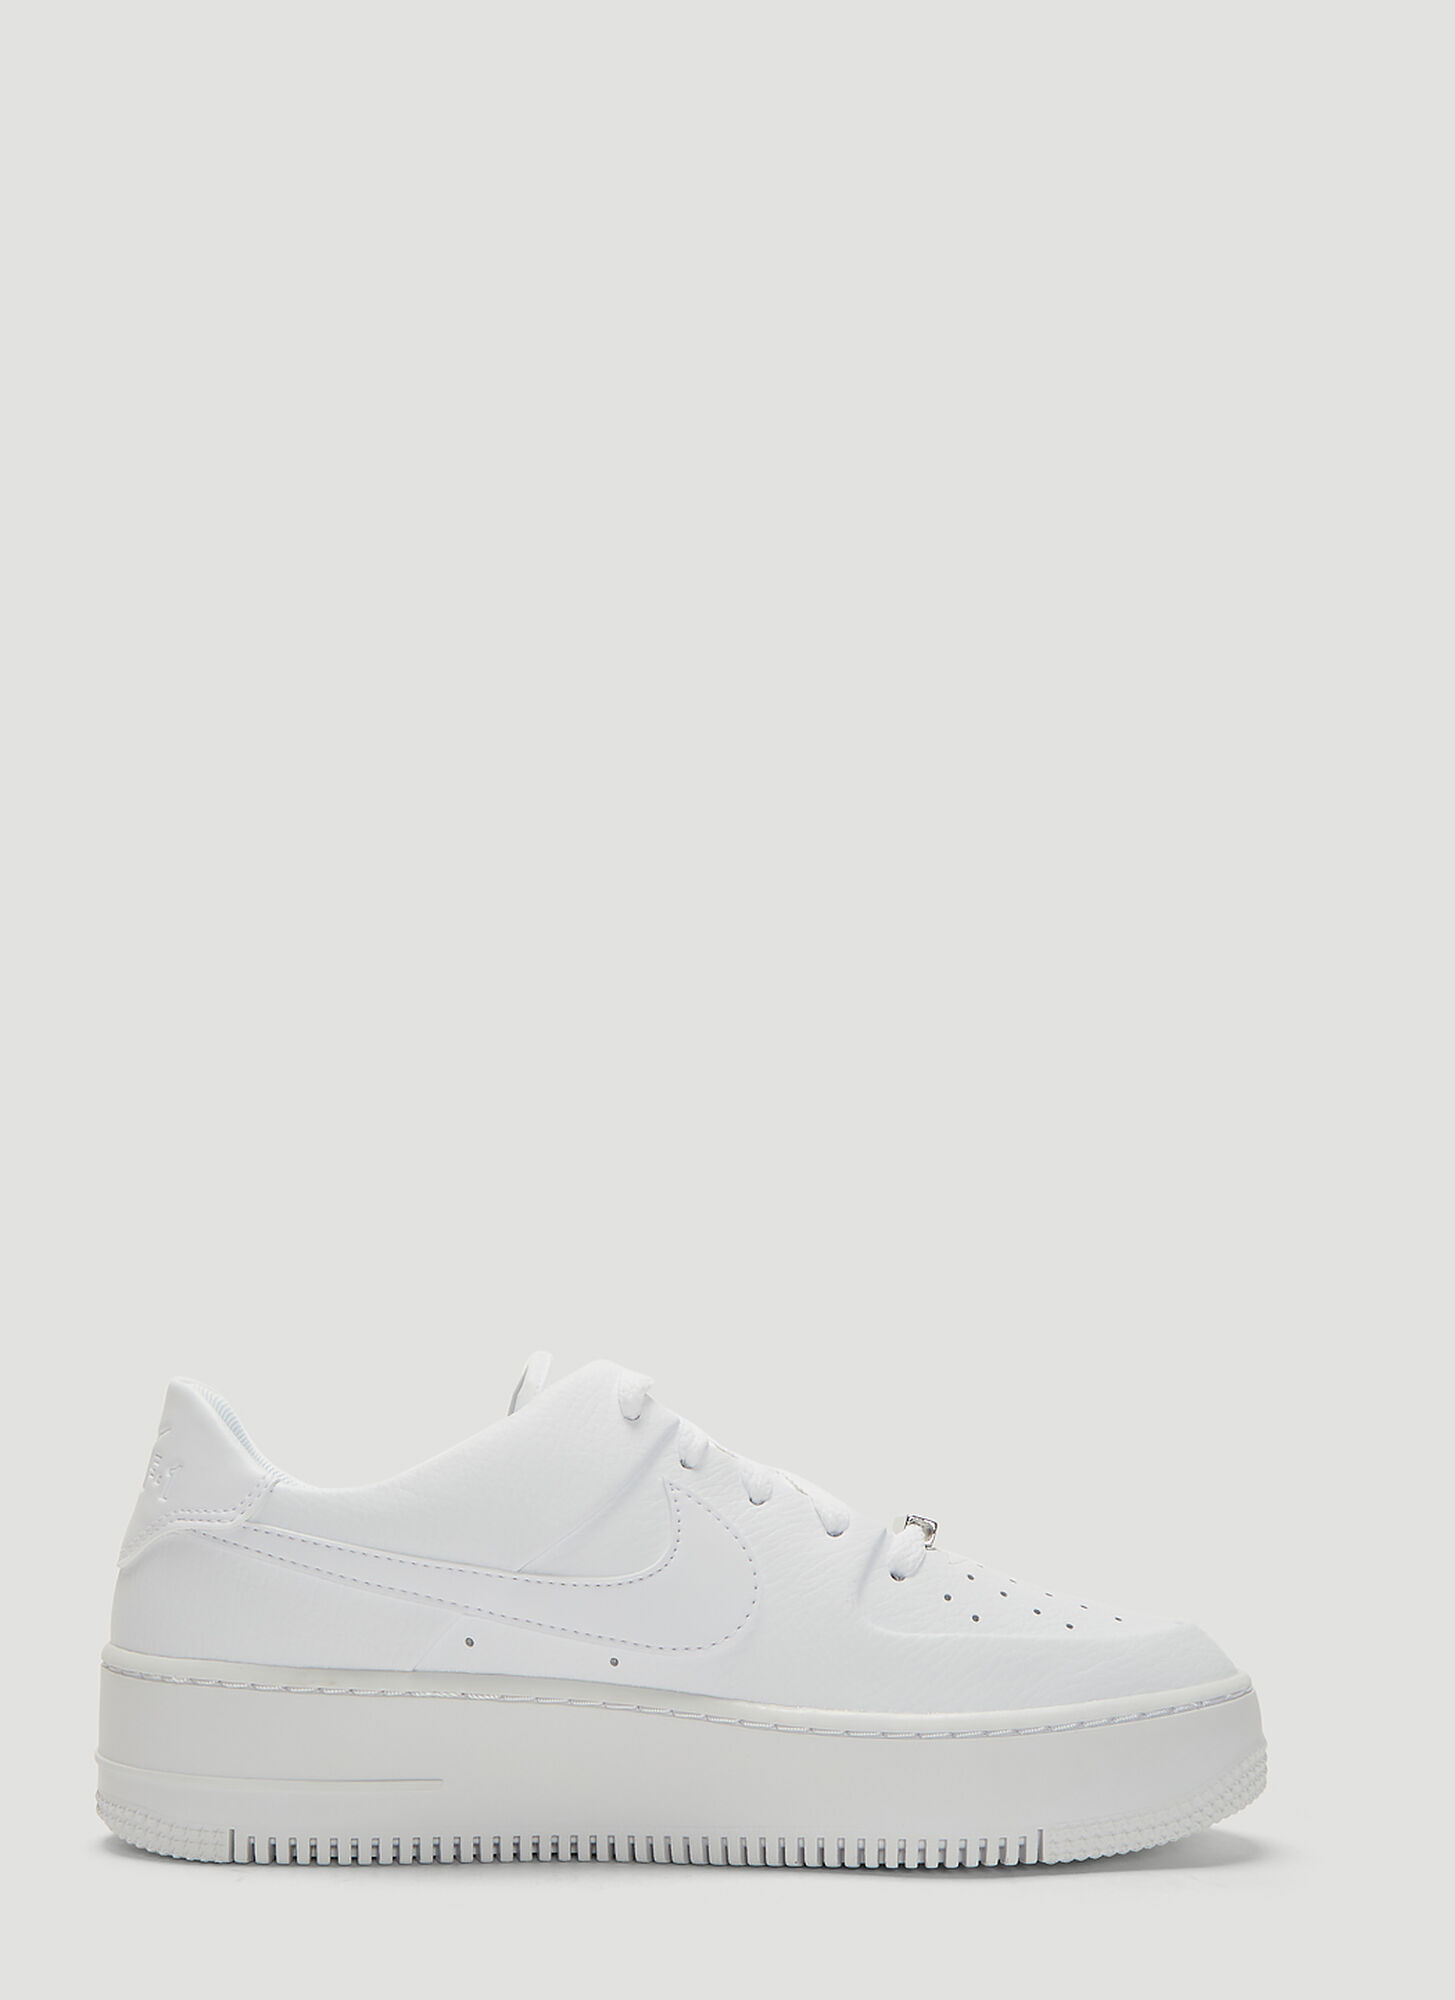 Nike Air Force 1 Sage Low Sneakers in White